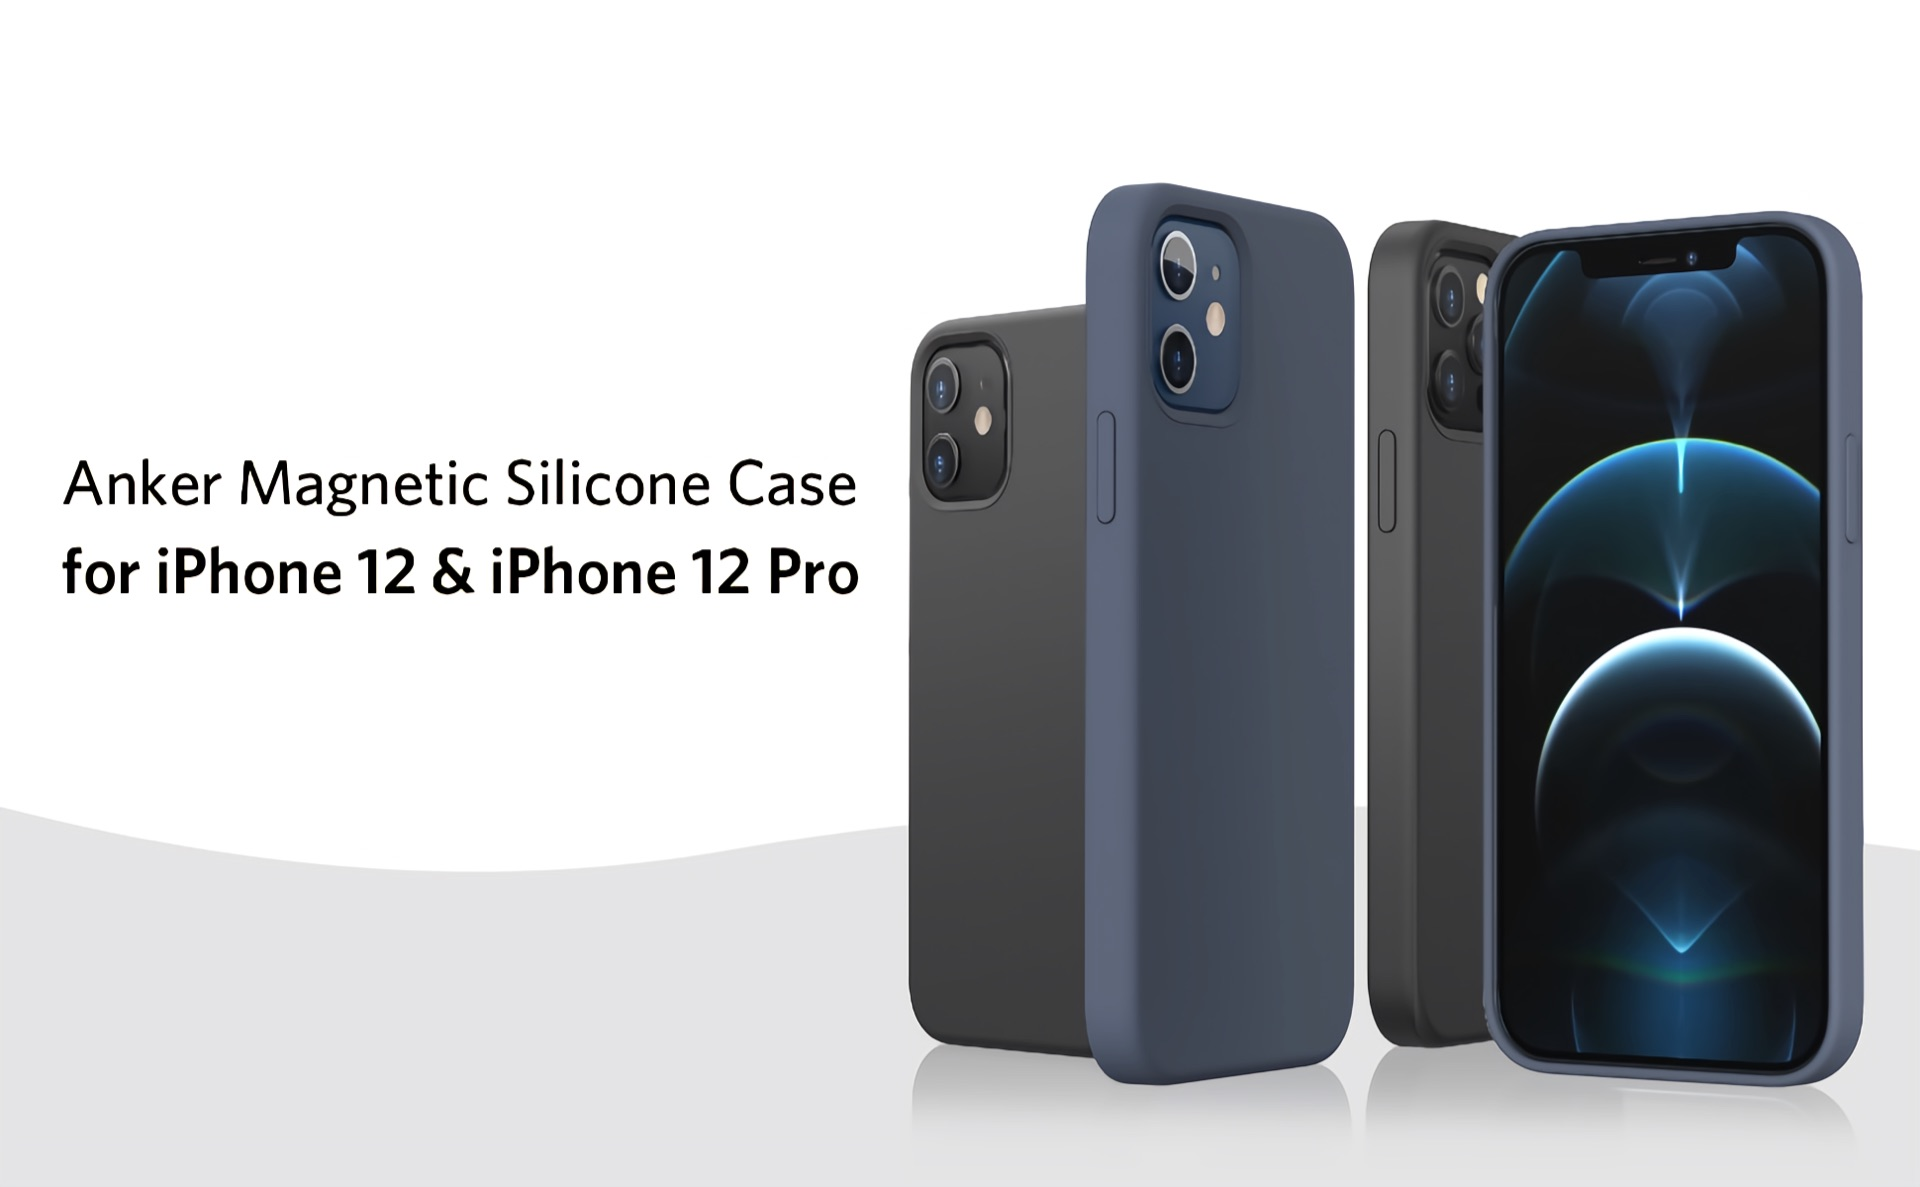 Anker Magnetic Silicone Case Hero